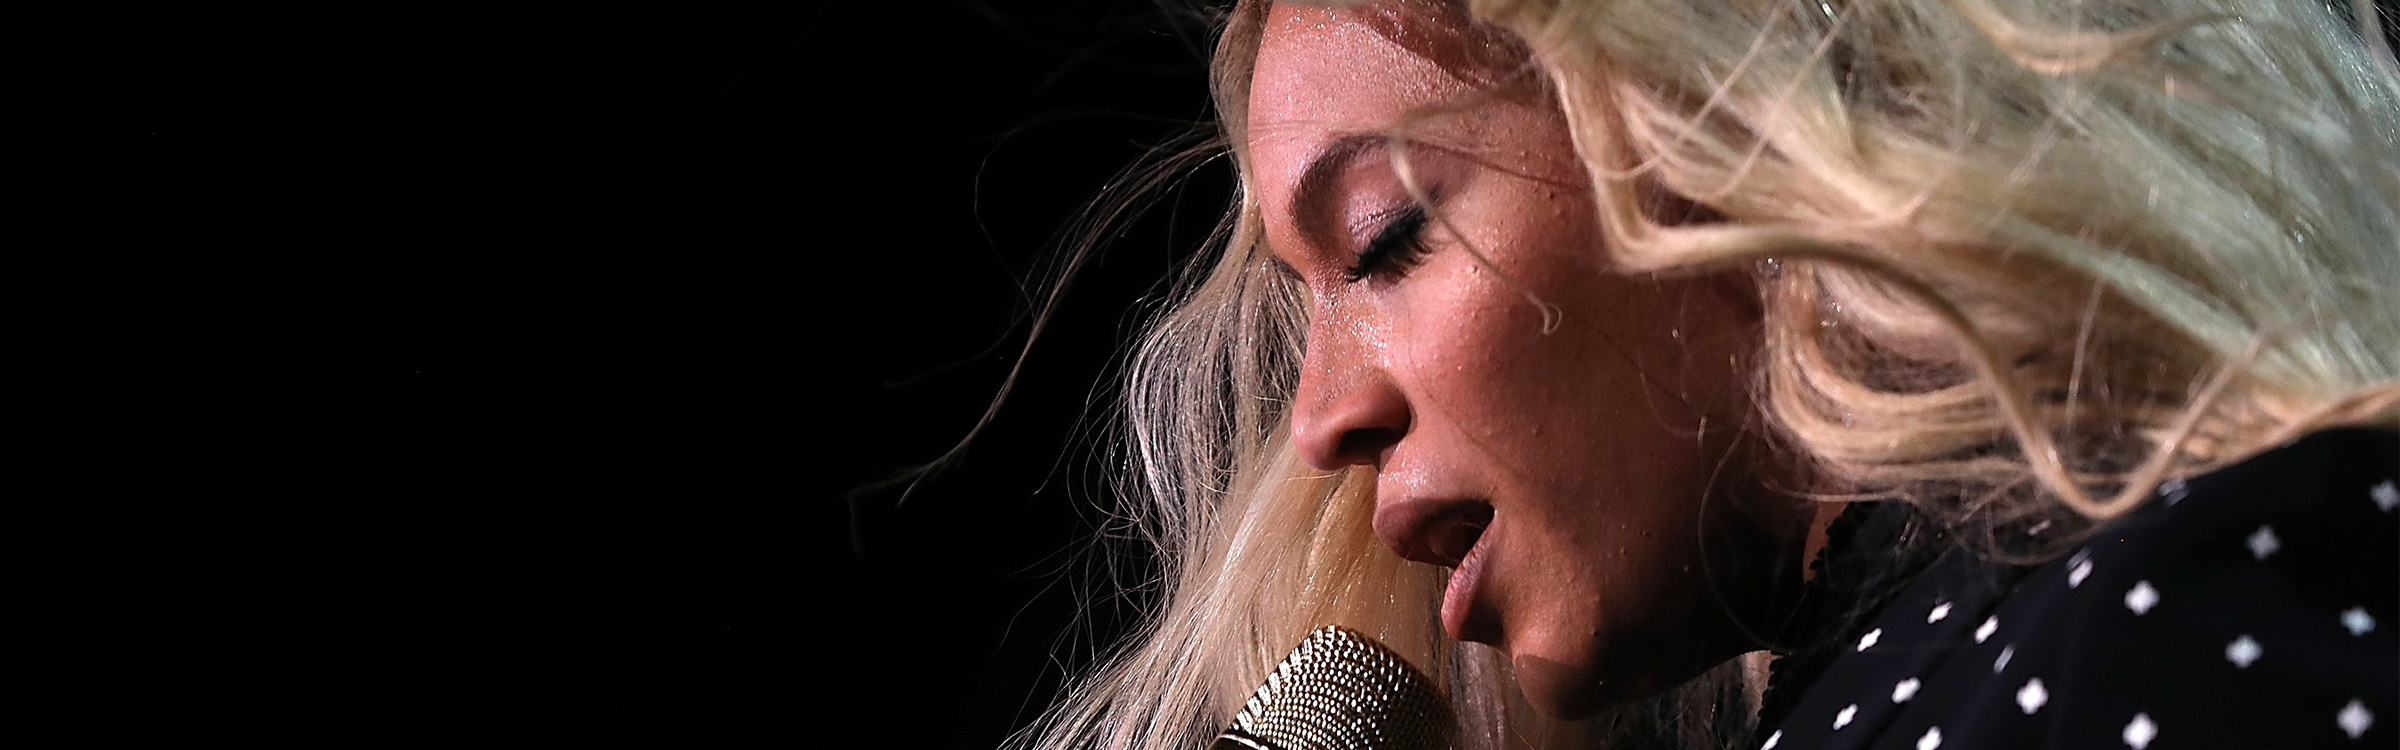 Beyonce grammy header